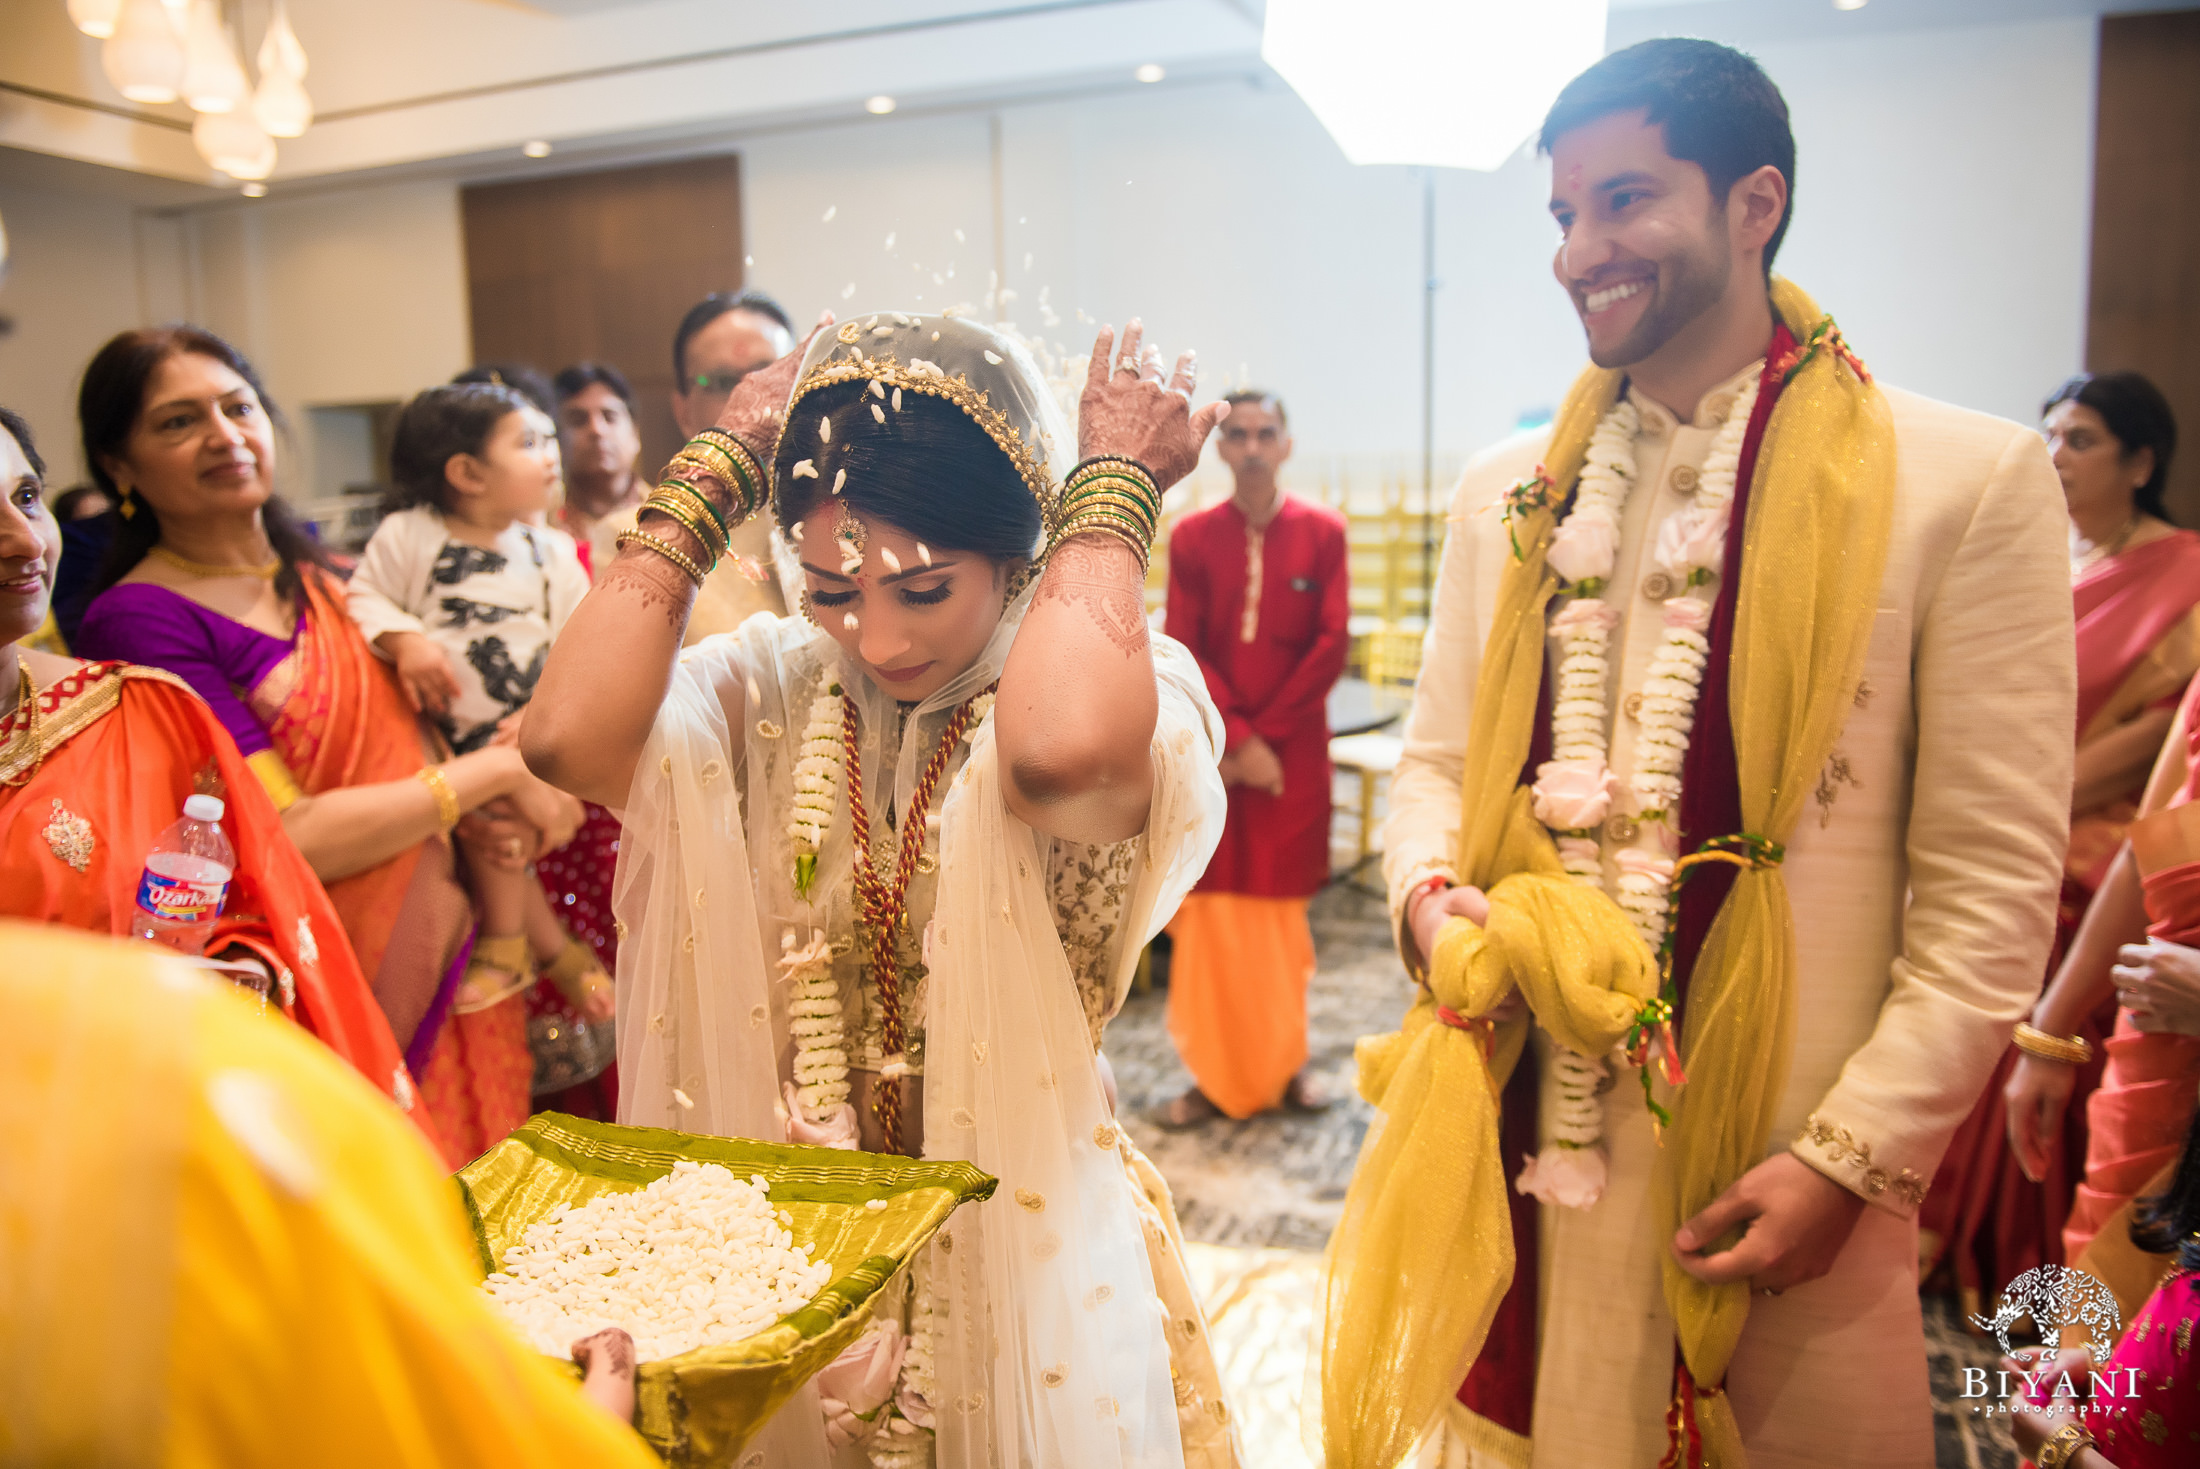 Bride during her vidai throwing rice behind her